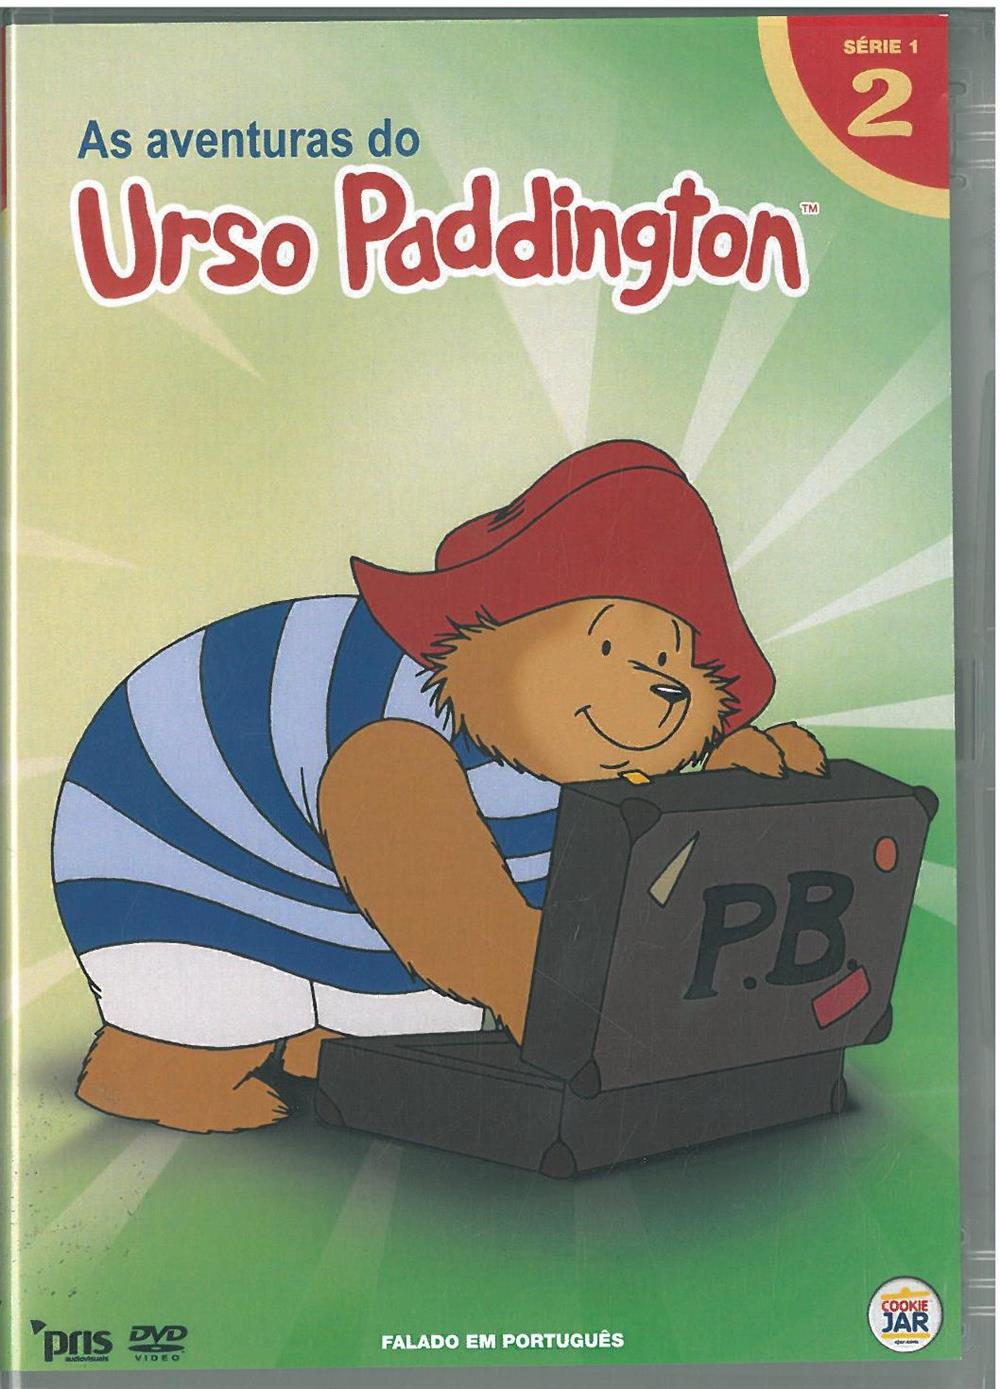 As aventuras do urso Paddington_2_DVD.jpg